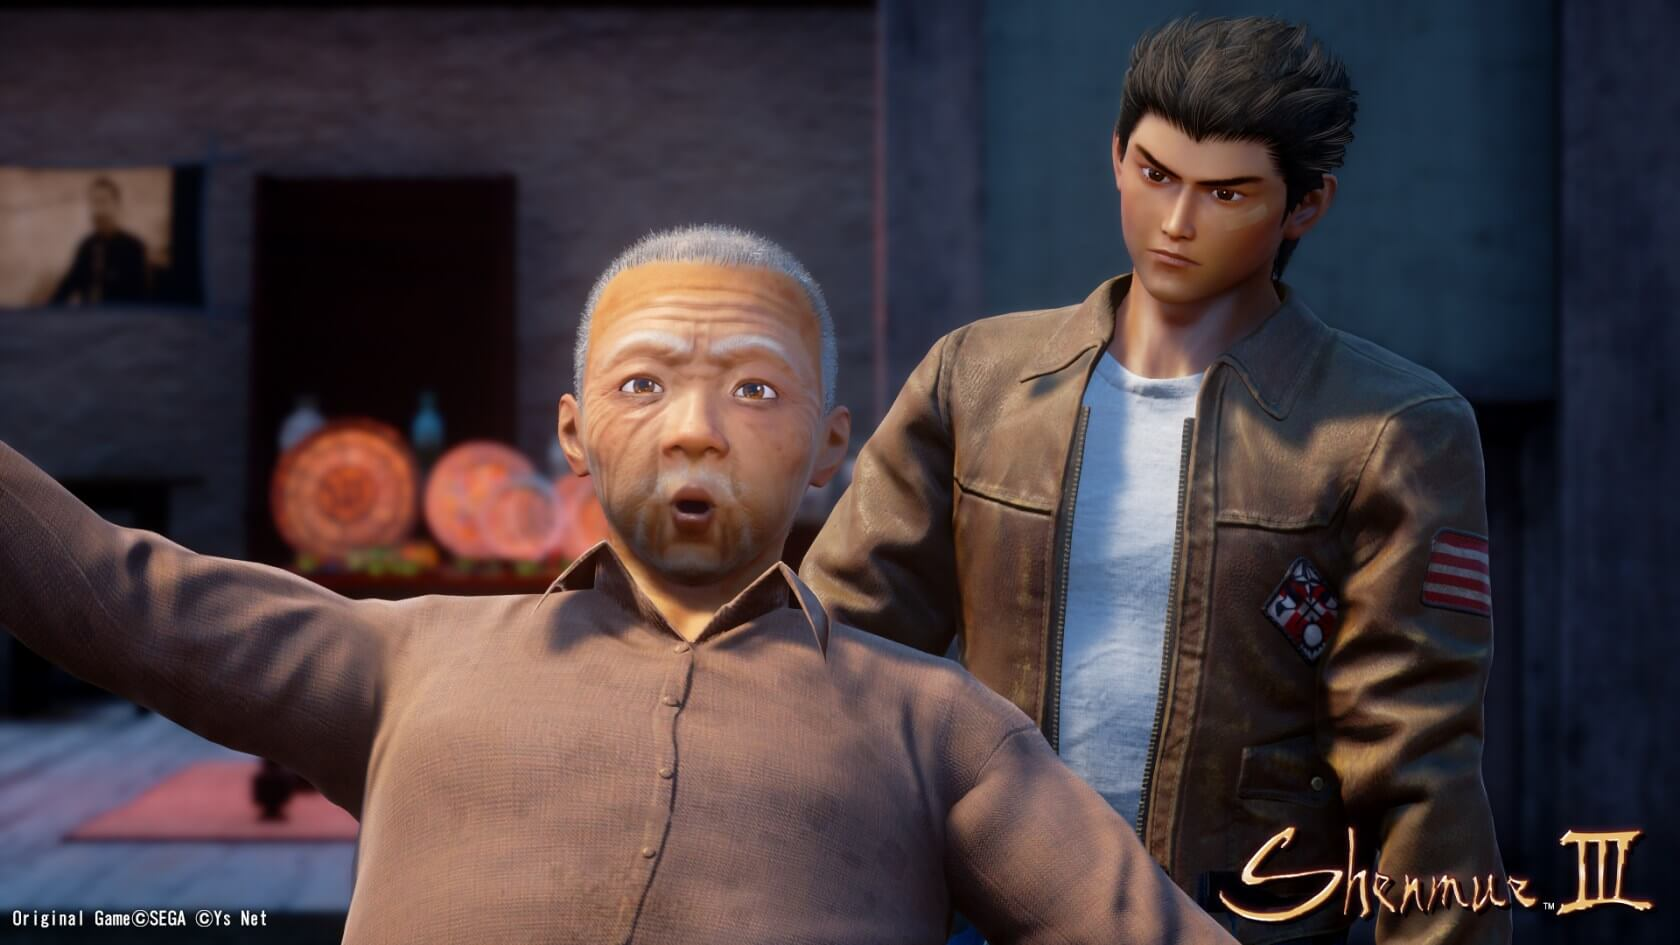 Epic Games will refund Shenmue 3 backers angry about exclusivity deal